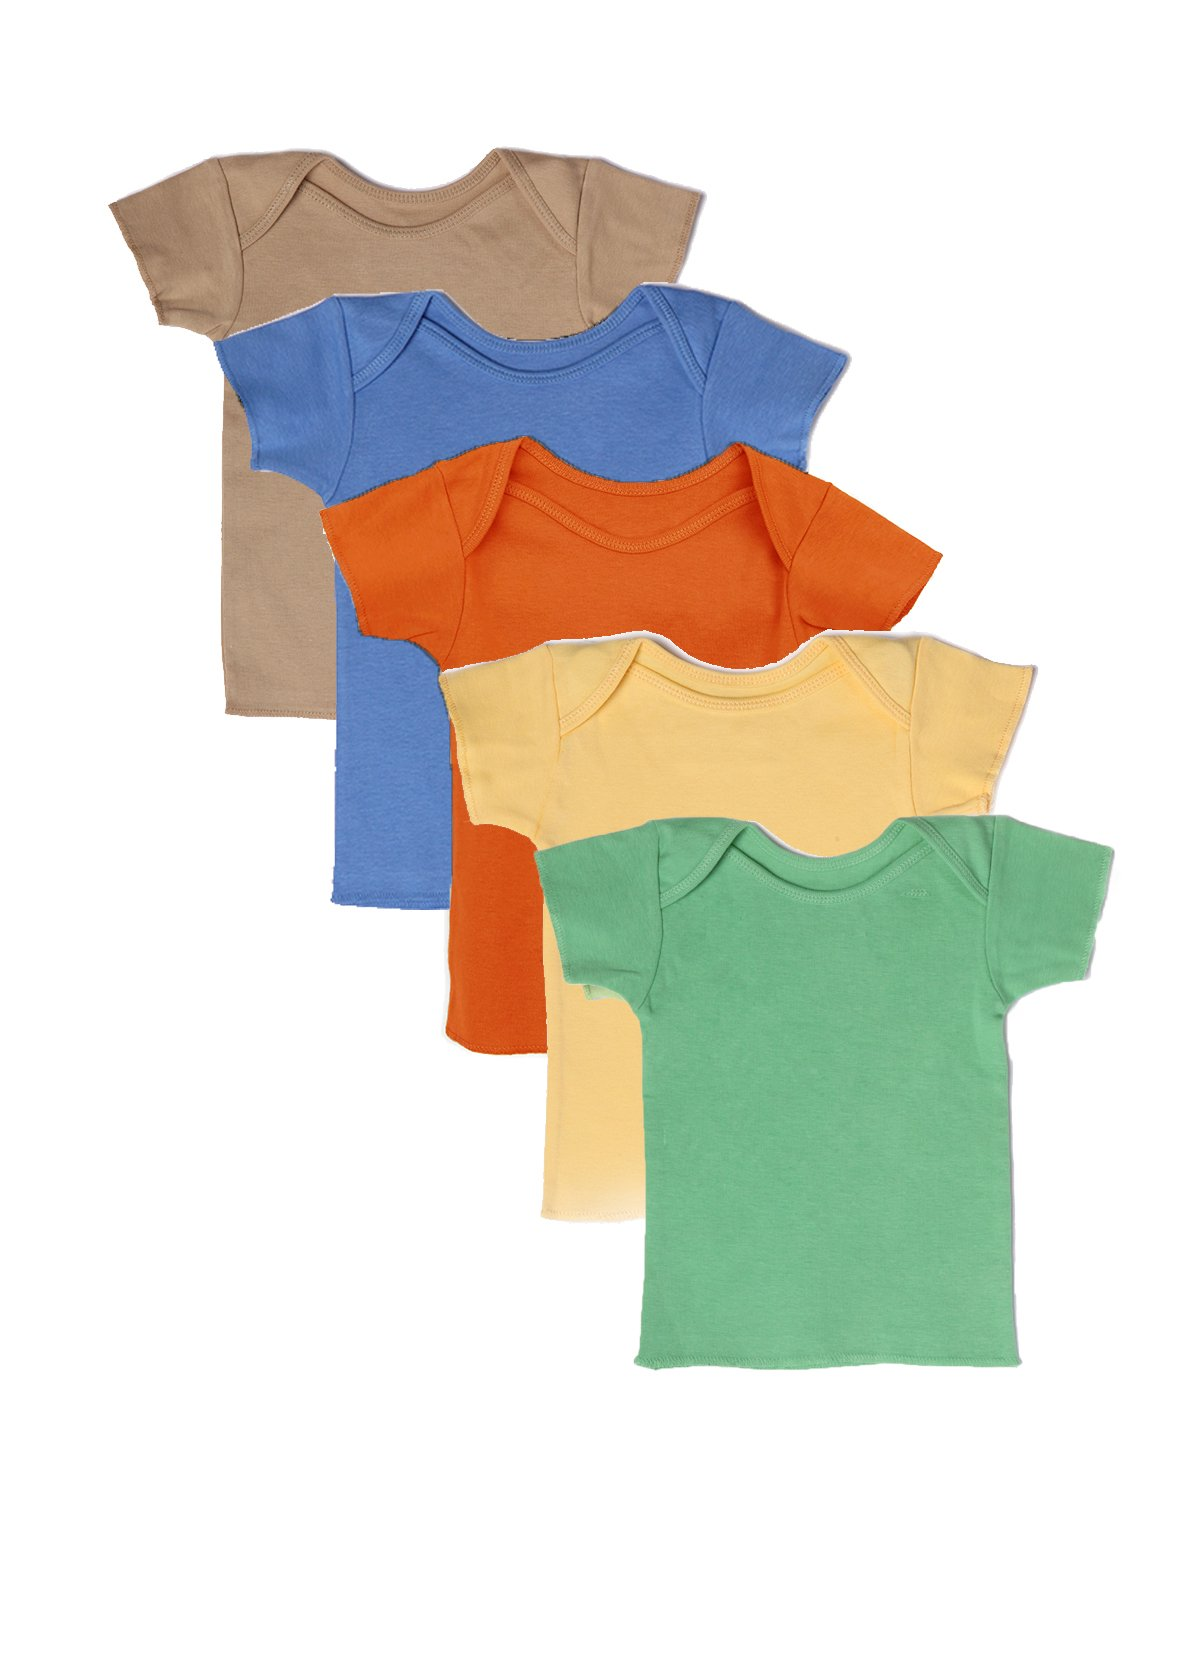 Best of Chums Baby Infant Short Sleeve Lap tee Shoulder Multicolor Pack of 5 Unisex 100% Cotton